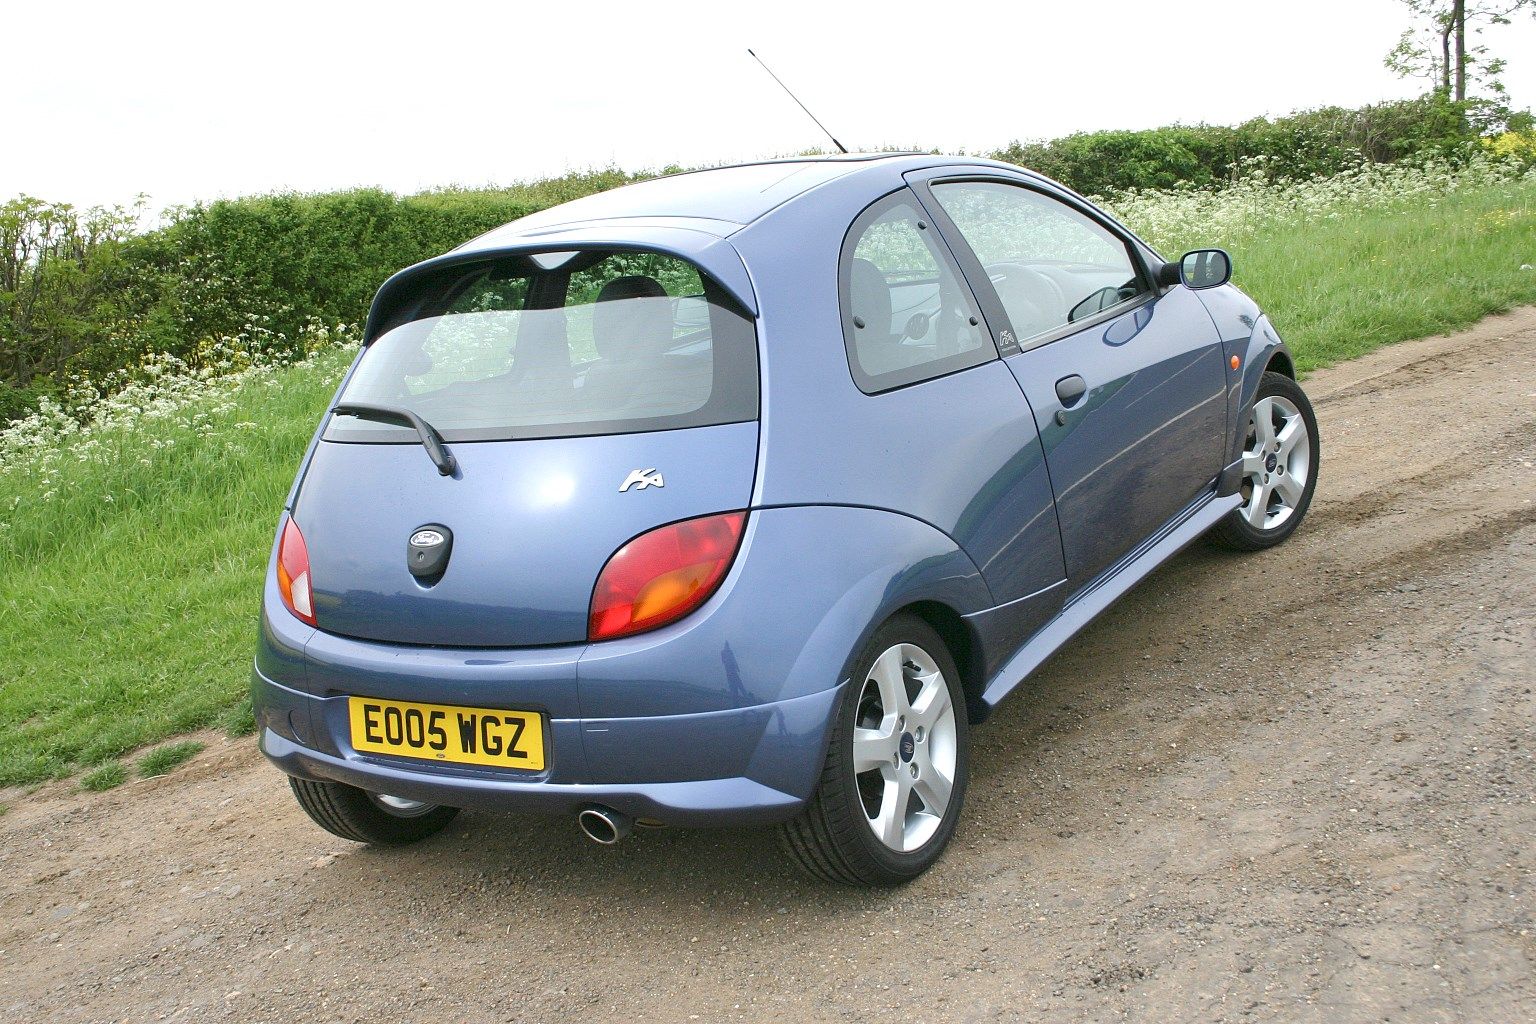 Ford Edge Used >> Ford Ka Hatchback Review (1996 - 2008) | Parkers